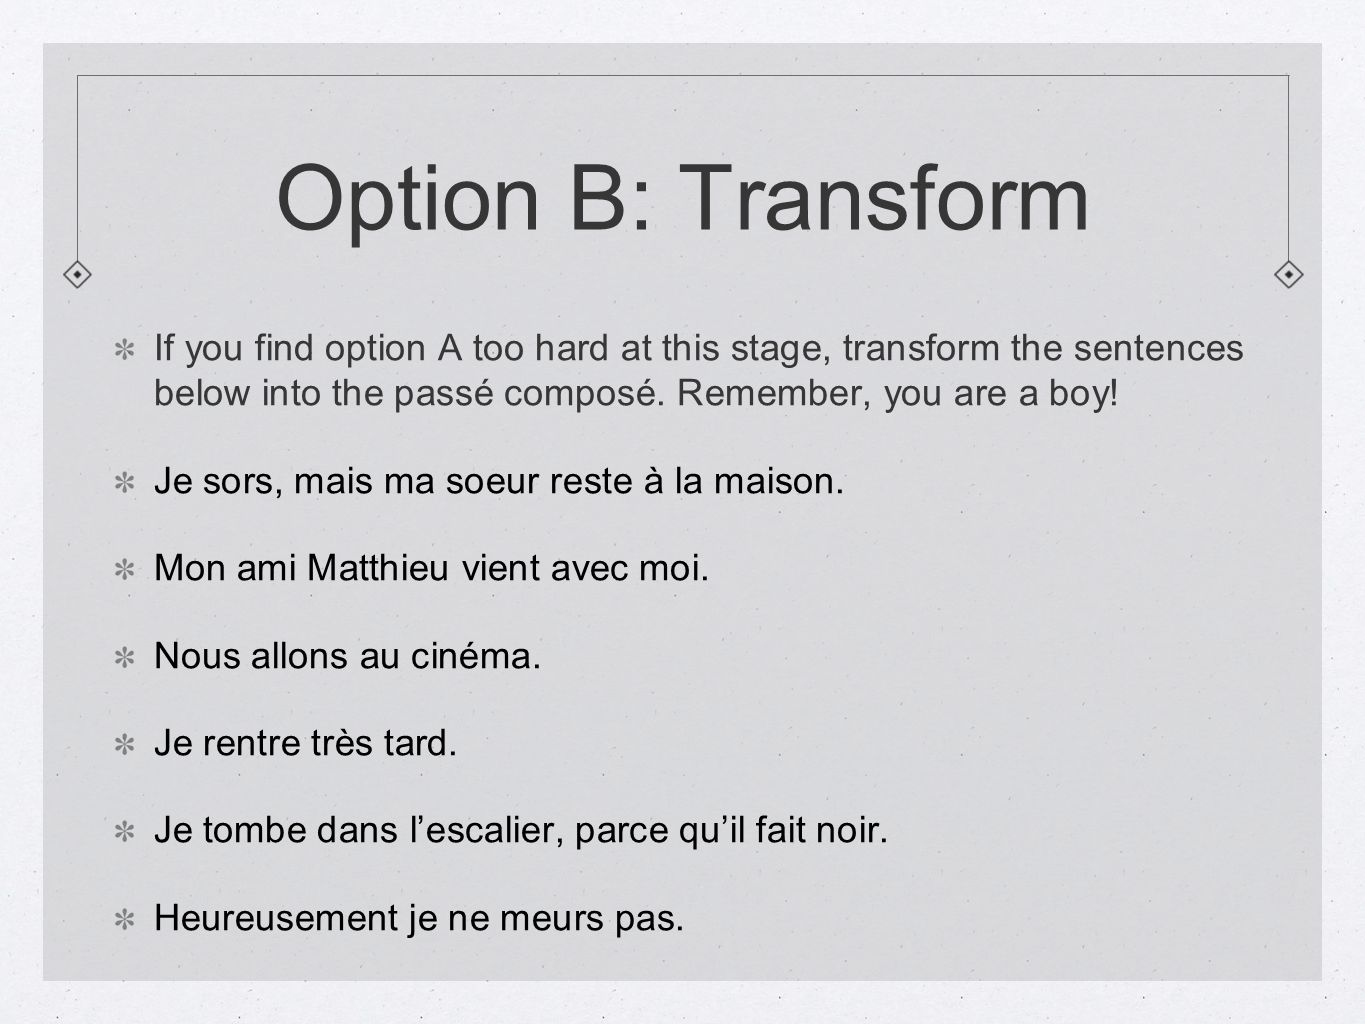 Option B: TransformIf you find option A too hard at this stage, transform the sentences below into the passé composé. Remember, you are a boy!